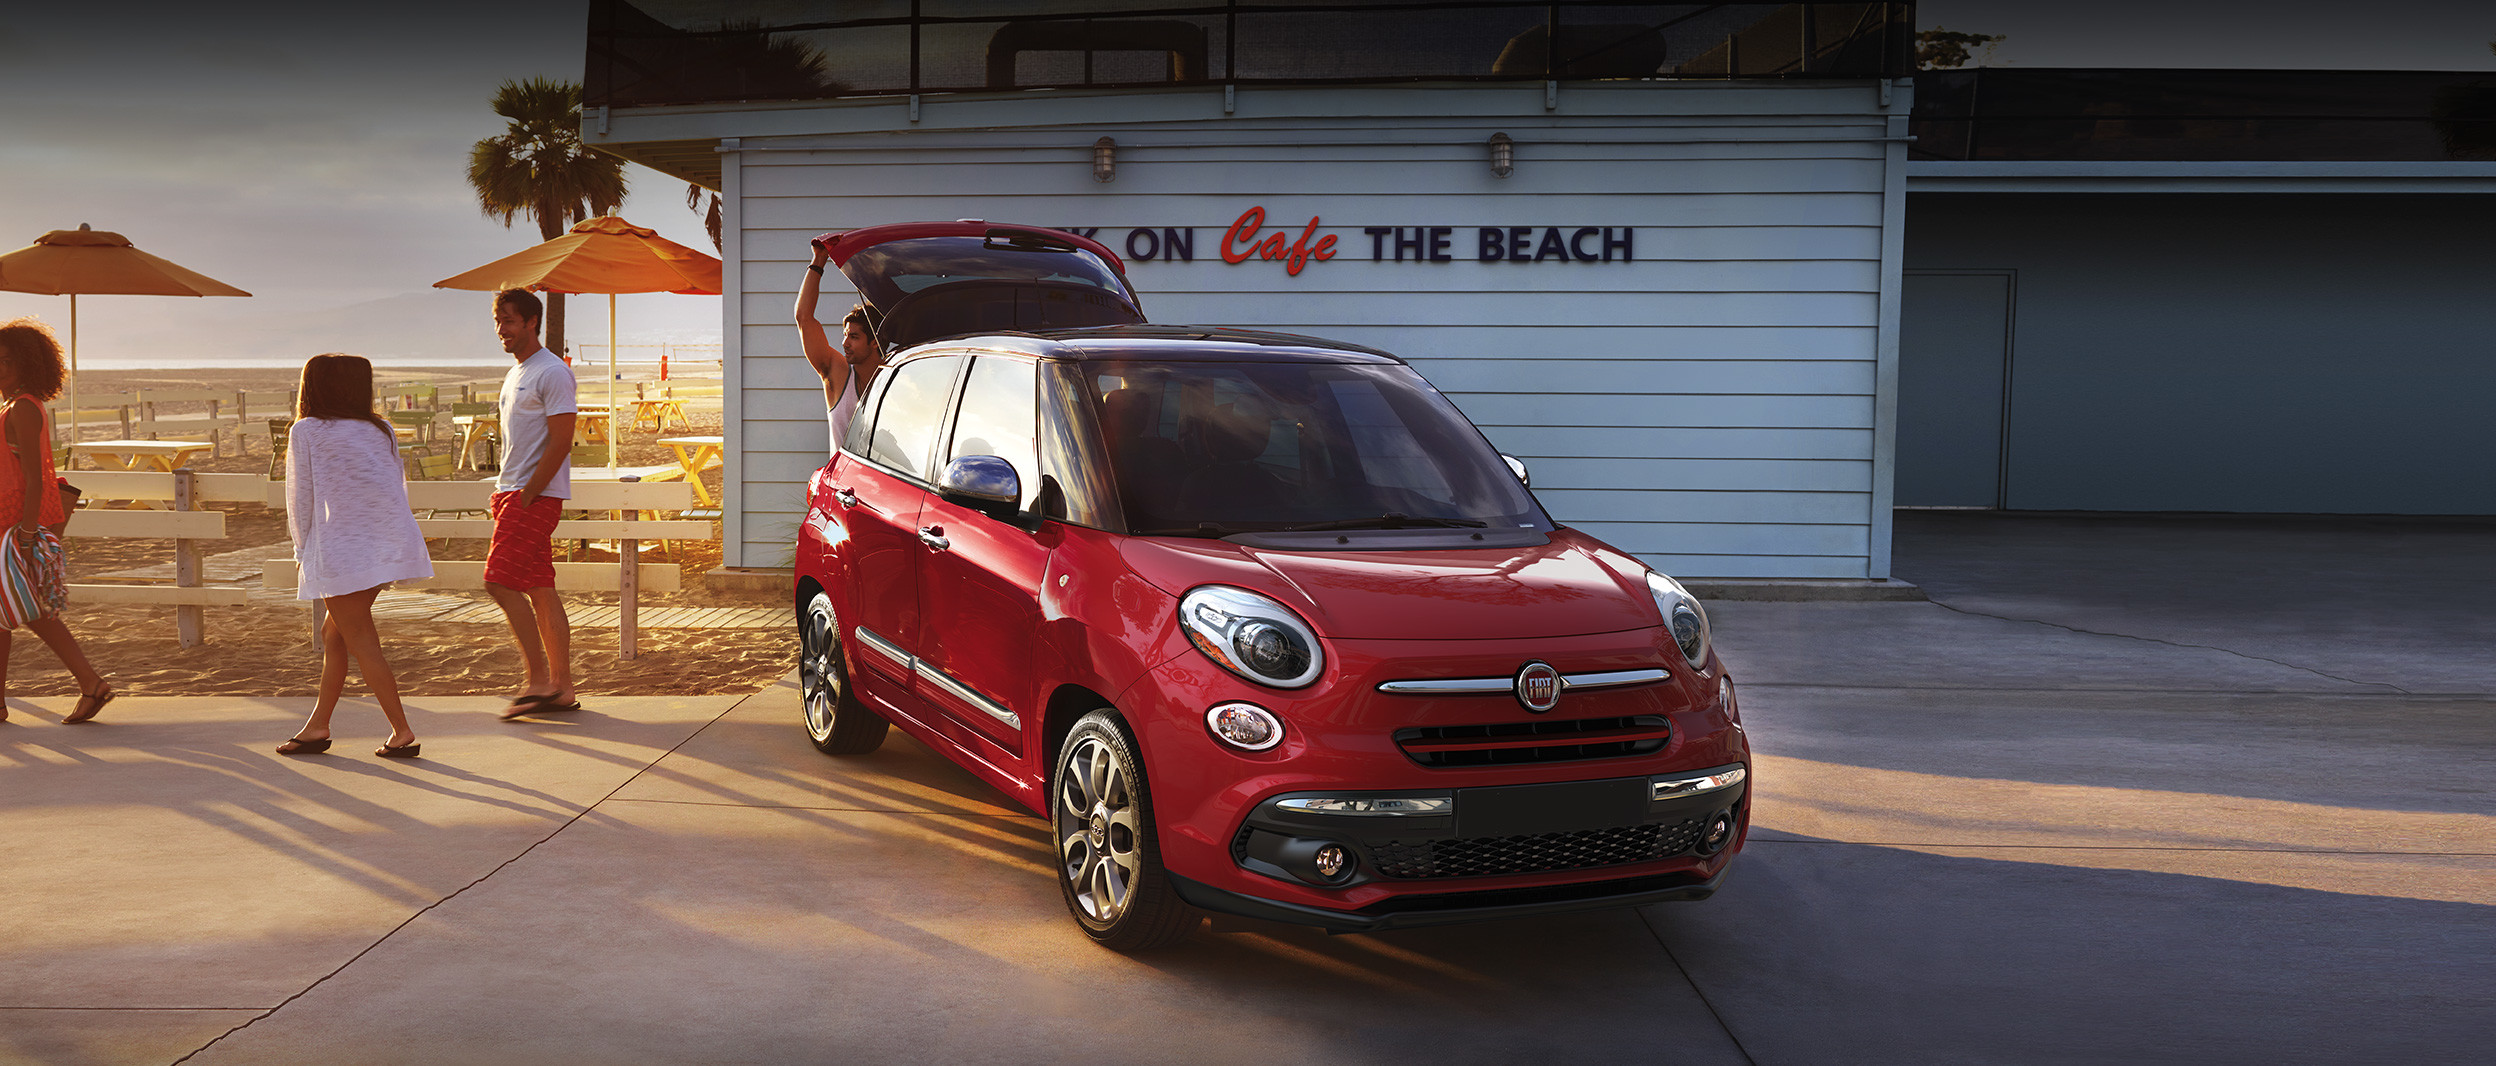 The 2020 Fiat 500L parked on a driveway beside two people during the sunset